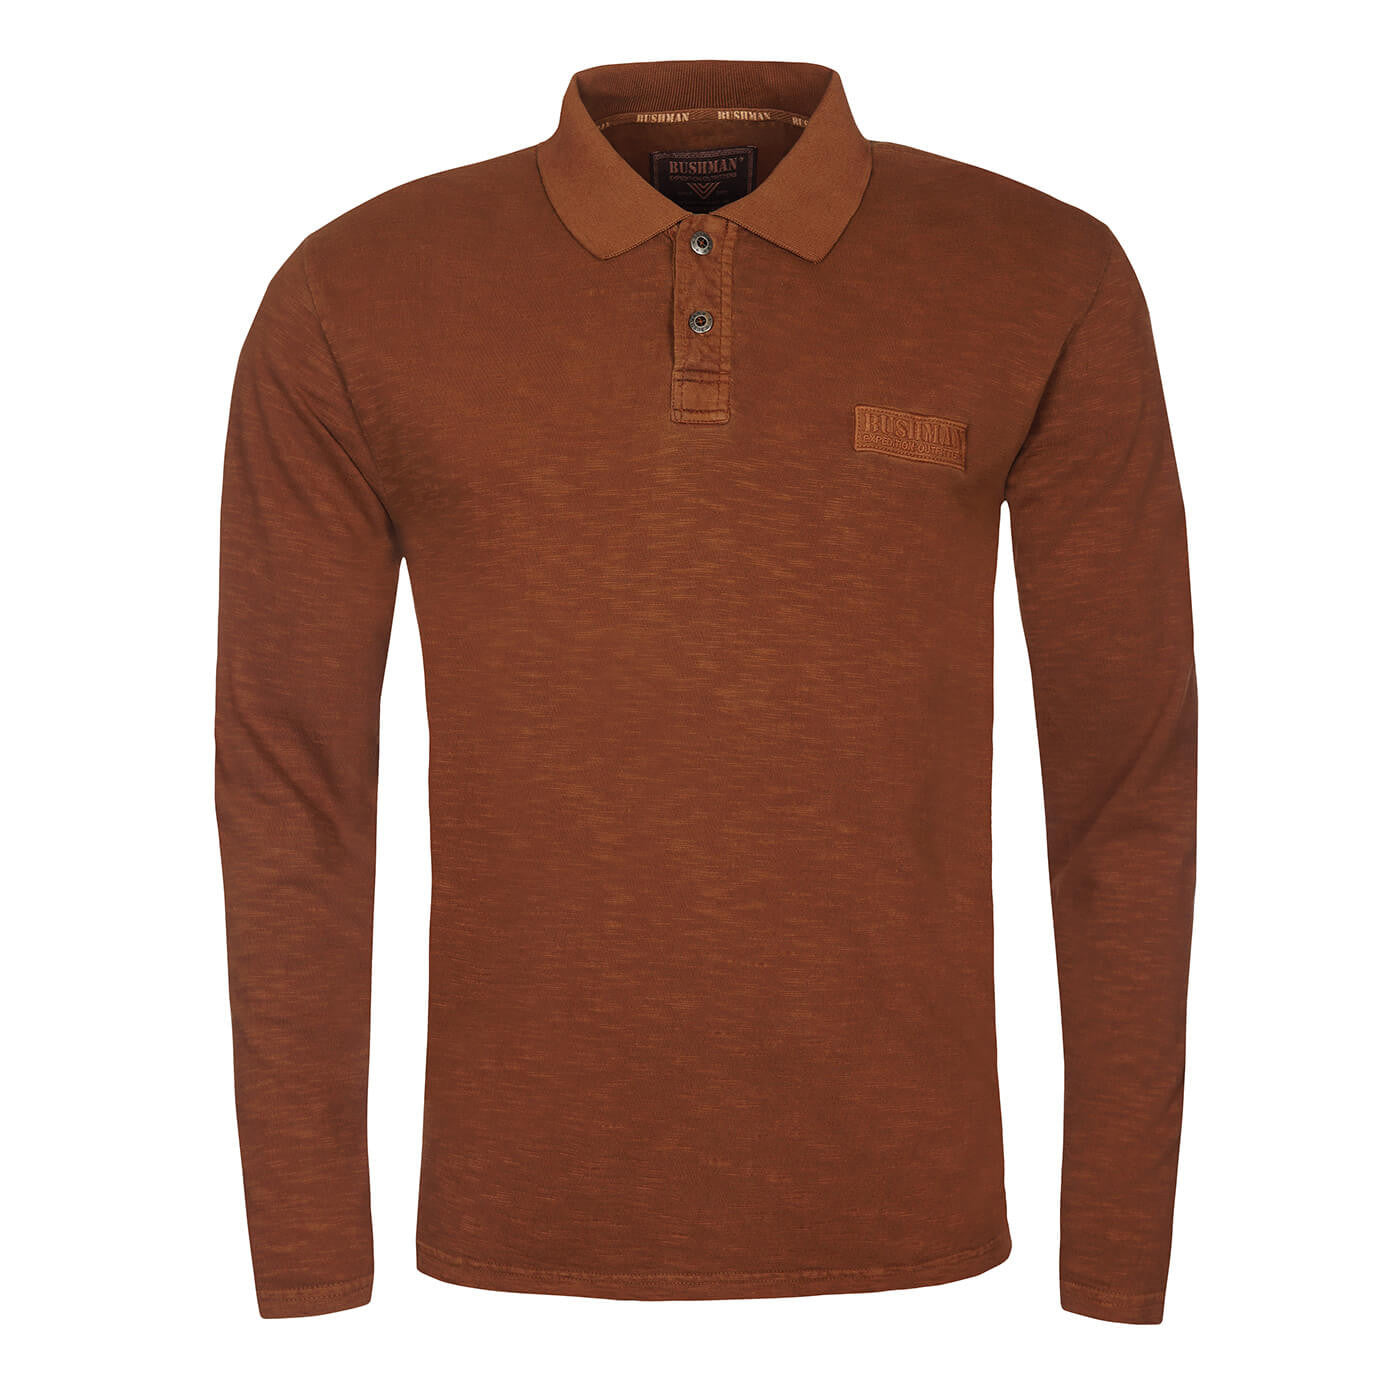 BUSHMANSHOP CORWIN MEN'S BROWN HEAVY COTTON LONG SLEEVE POLO T-SHIRT